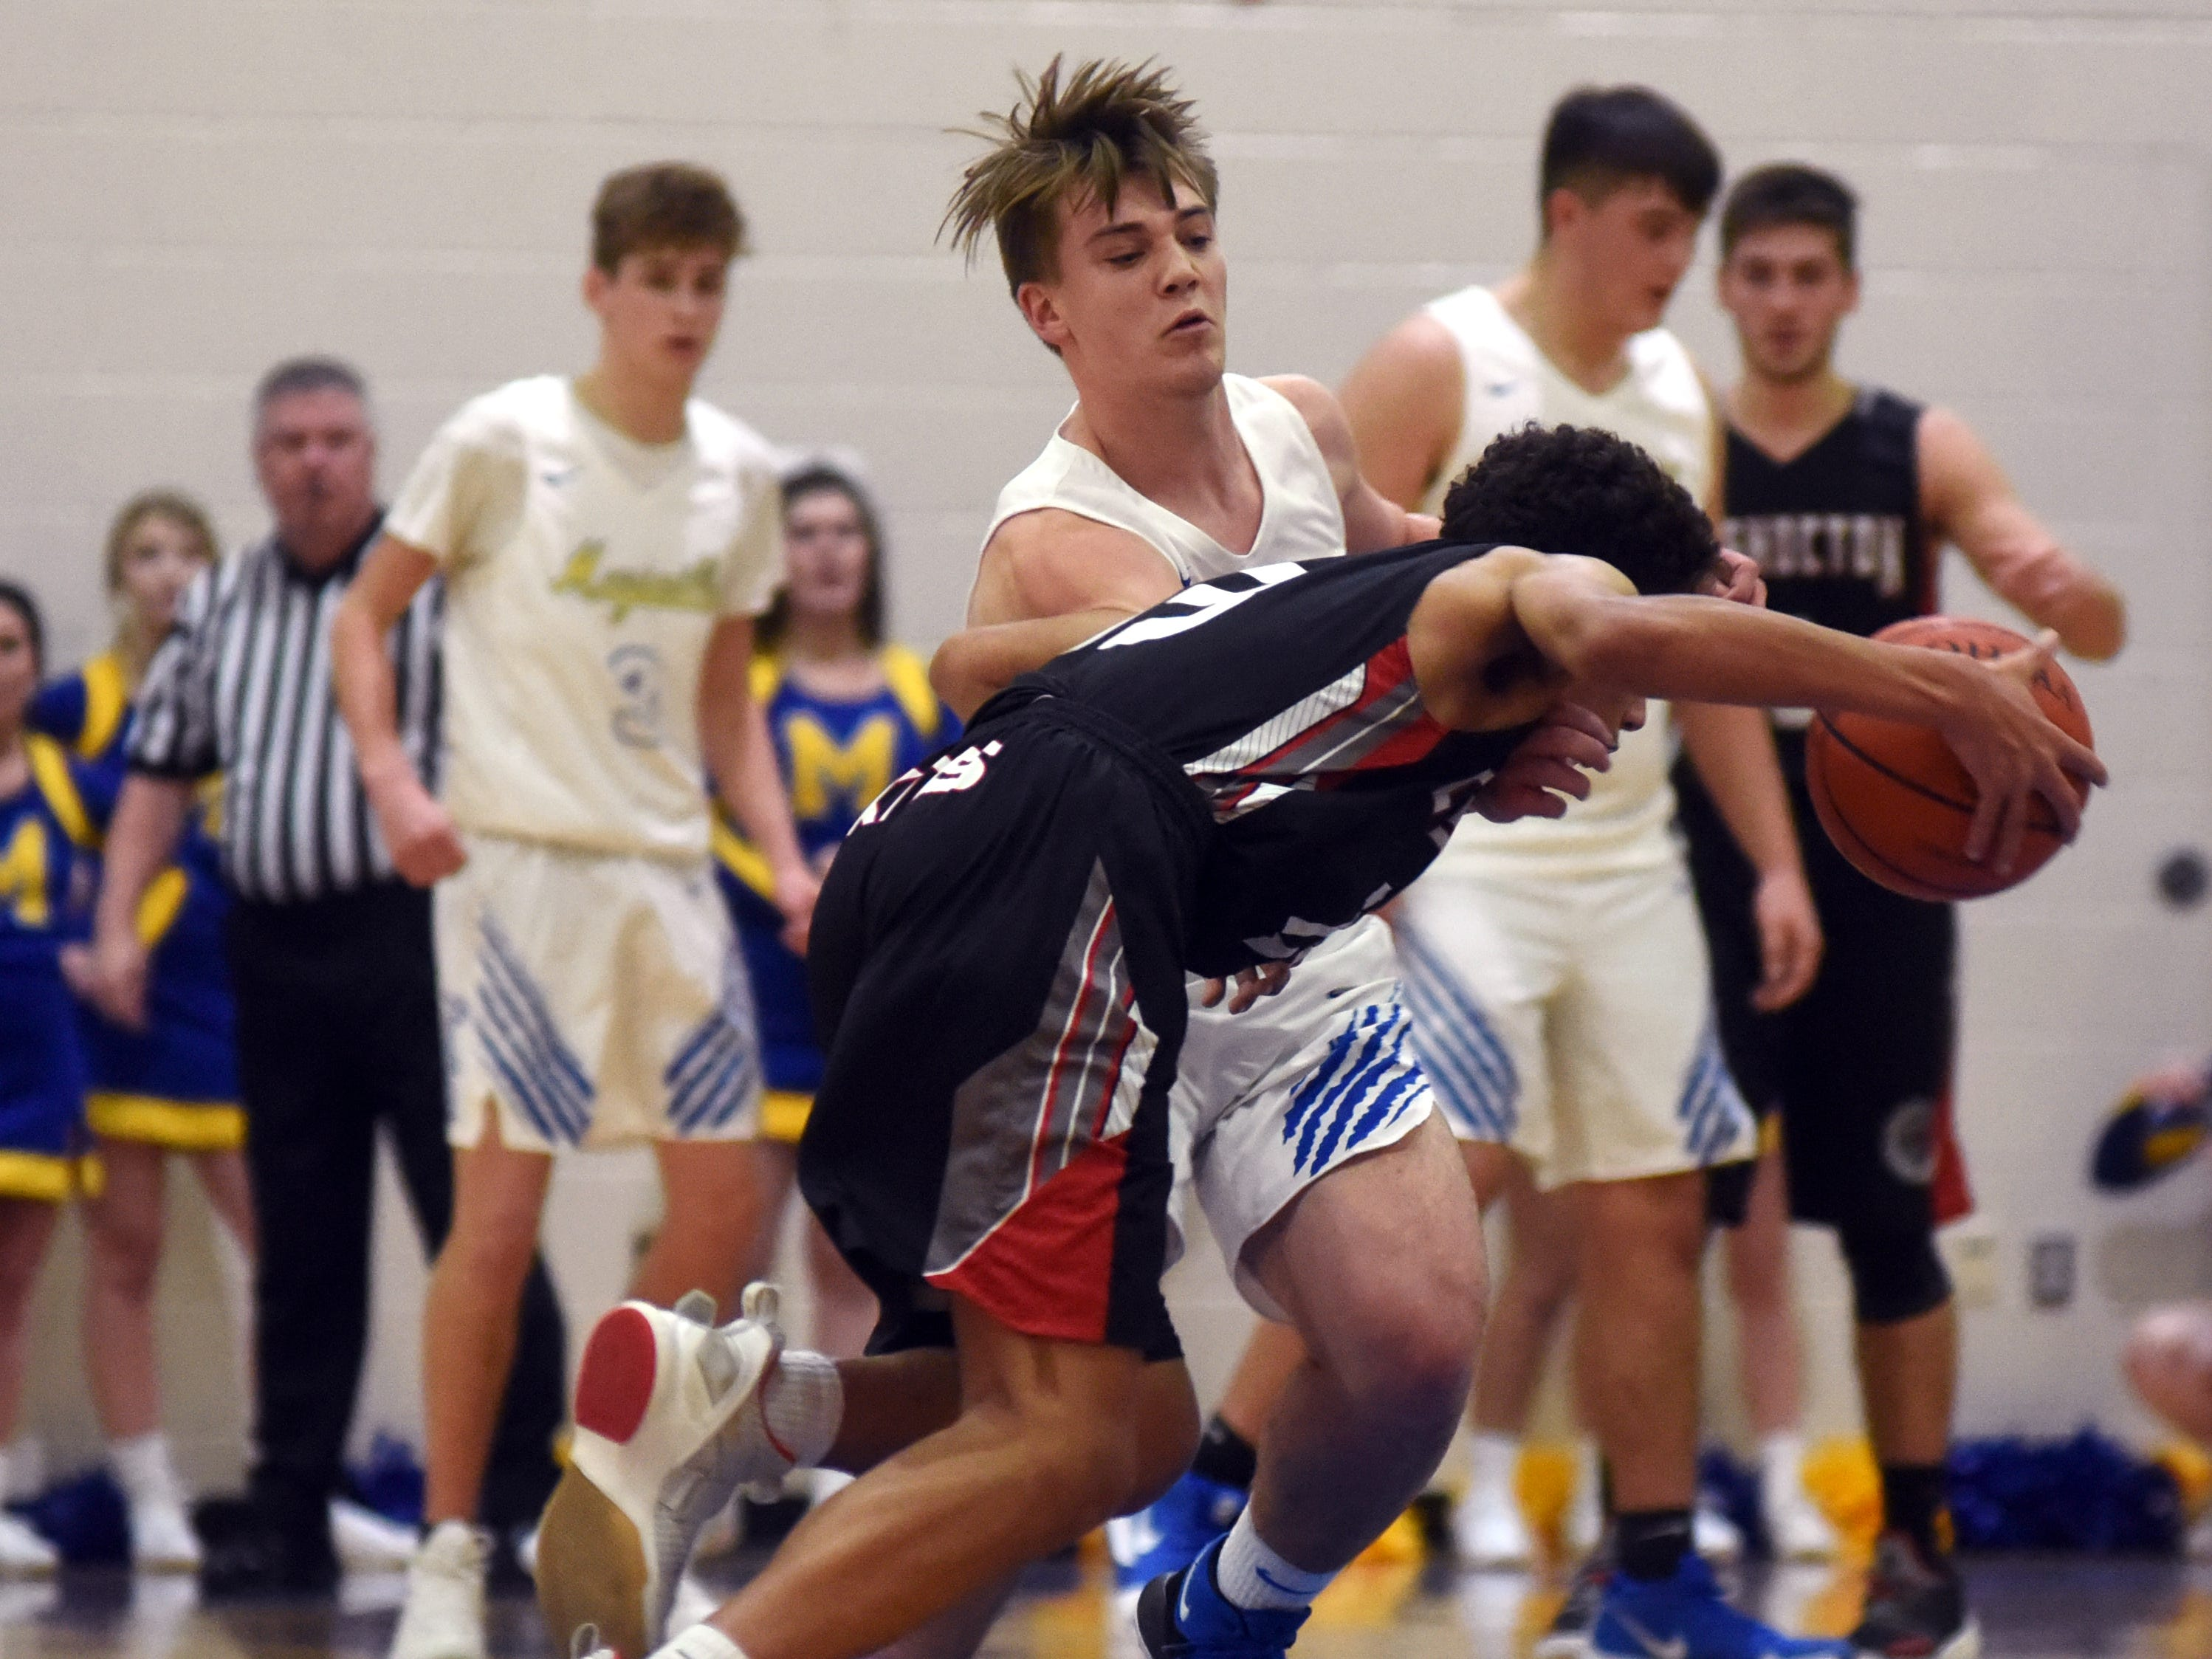 Coshocton's Tyren Walker is guarded closely by Maysville's Kaiden Hall on Saturday night in Newton Township.